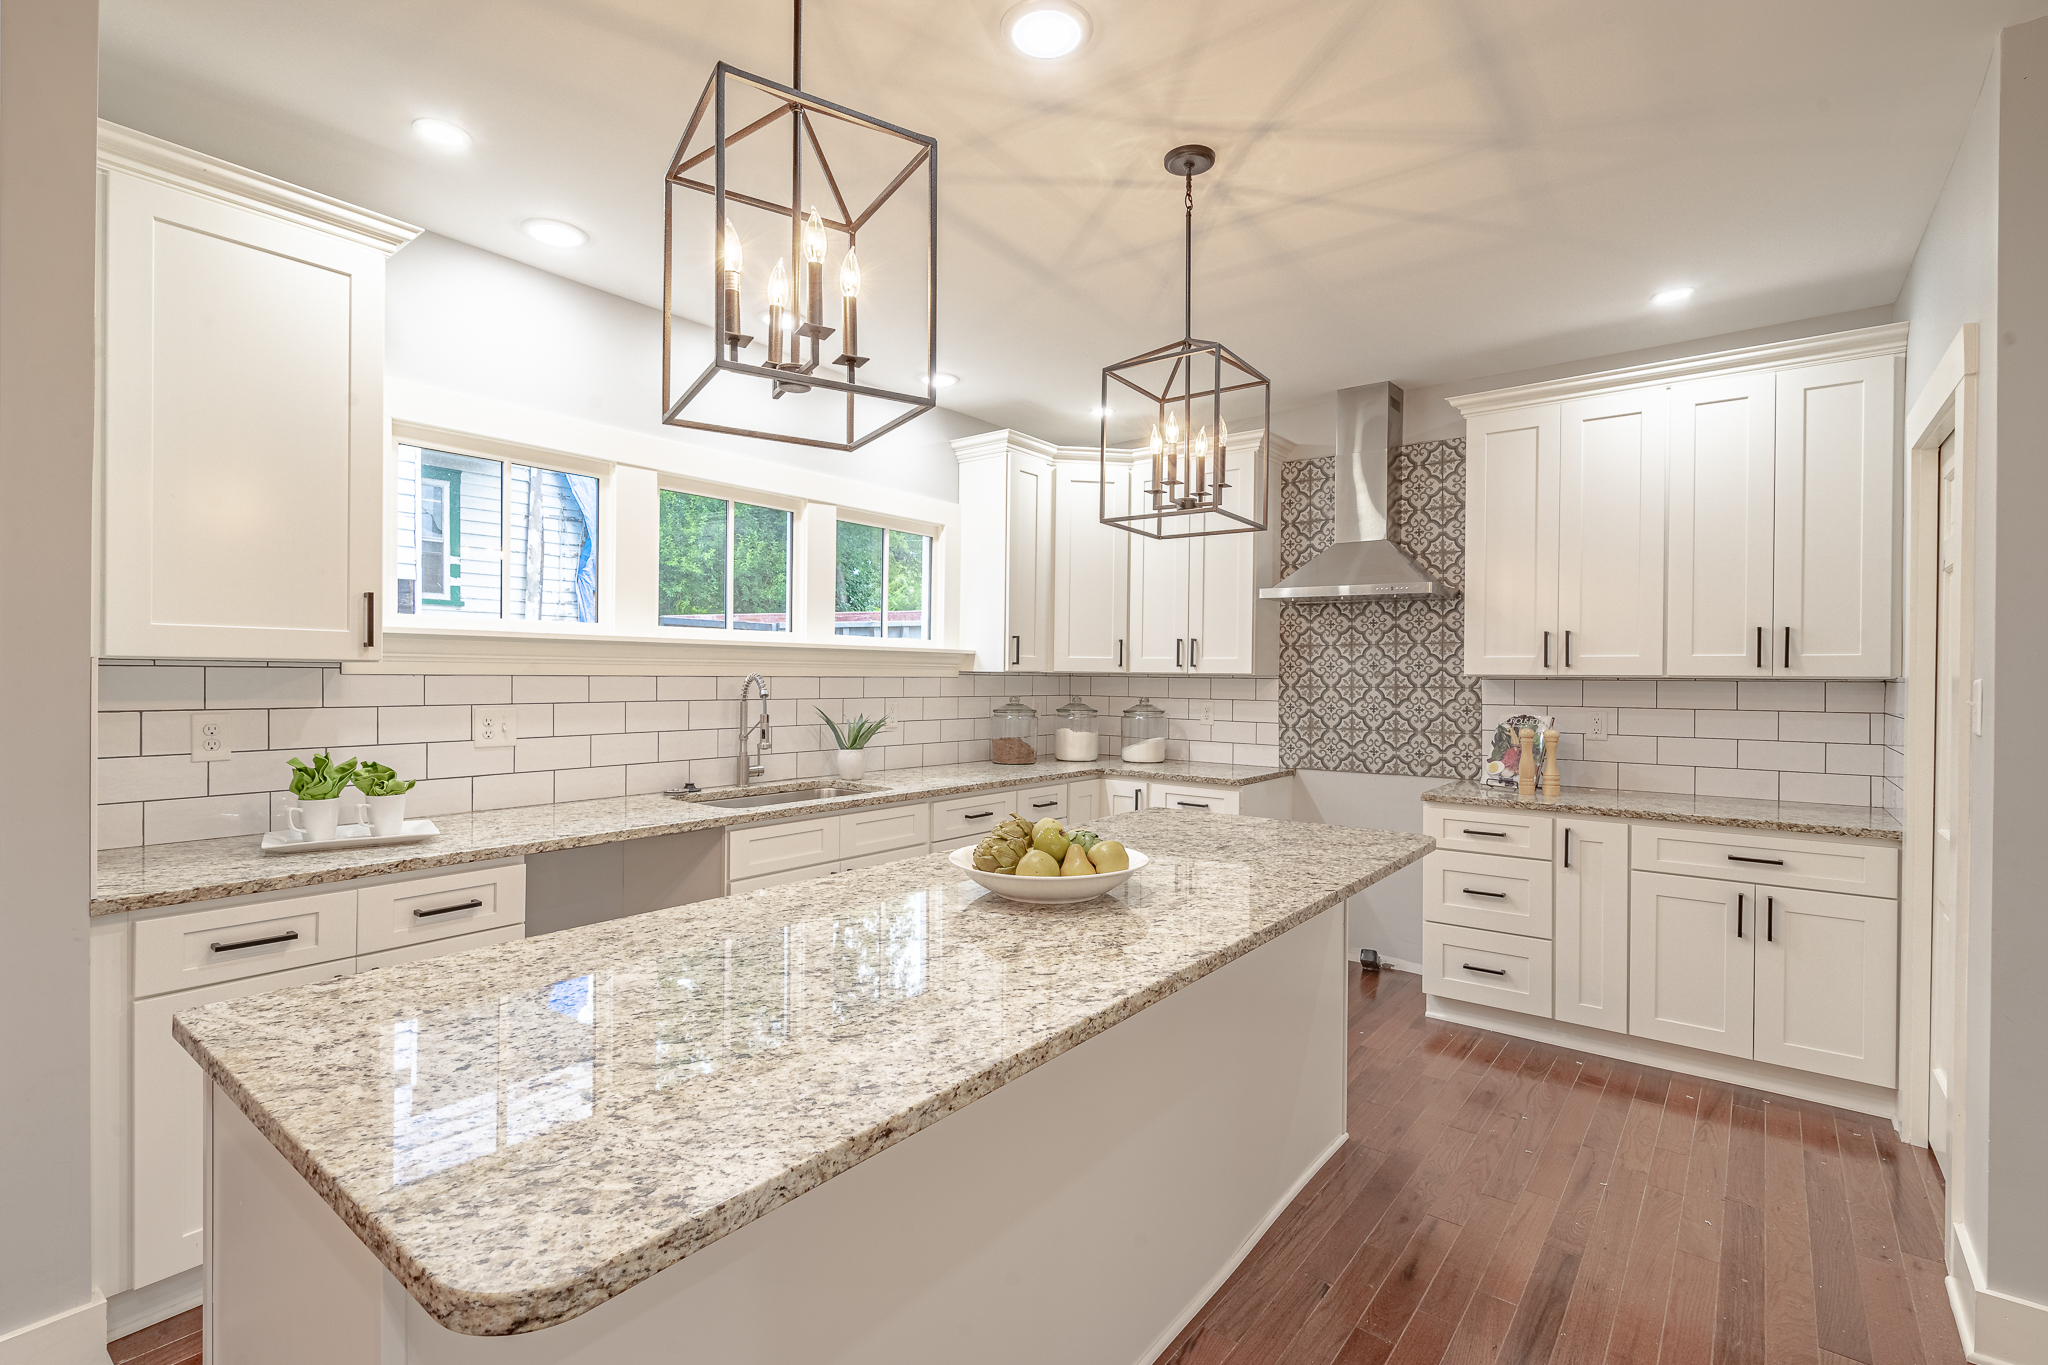 Knoxville Real Estate Photography - Farragut Kitchen